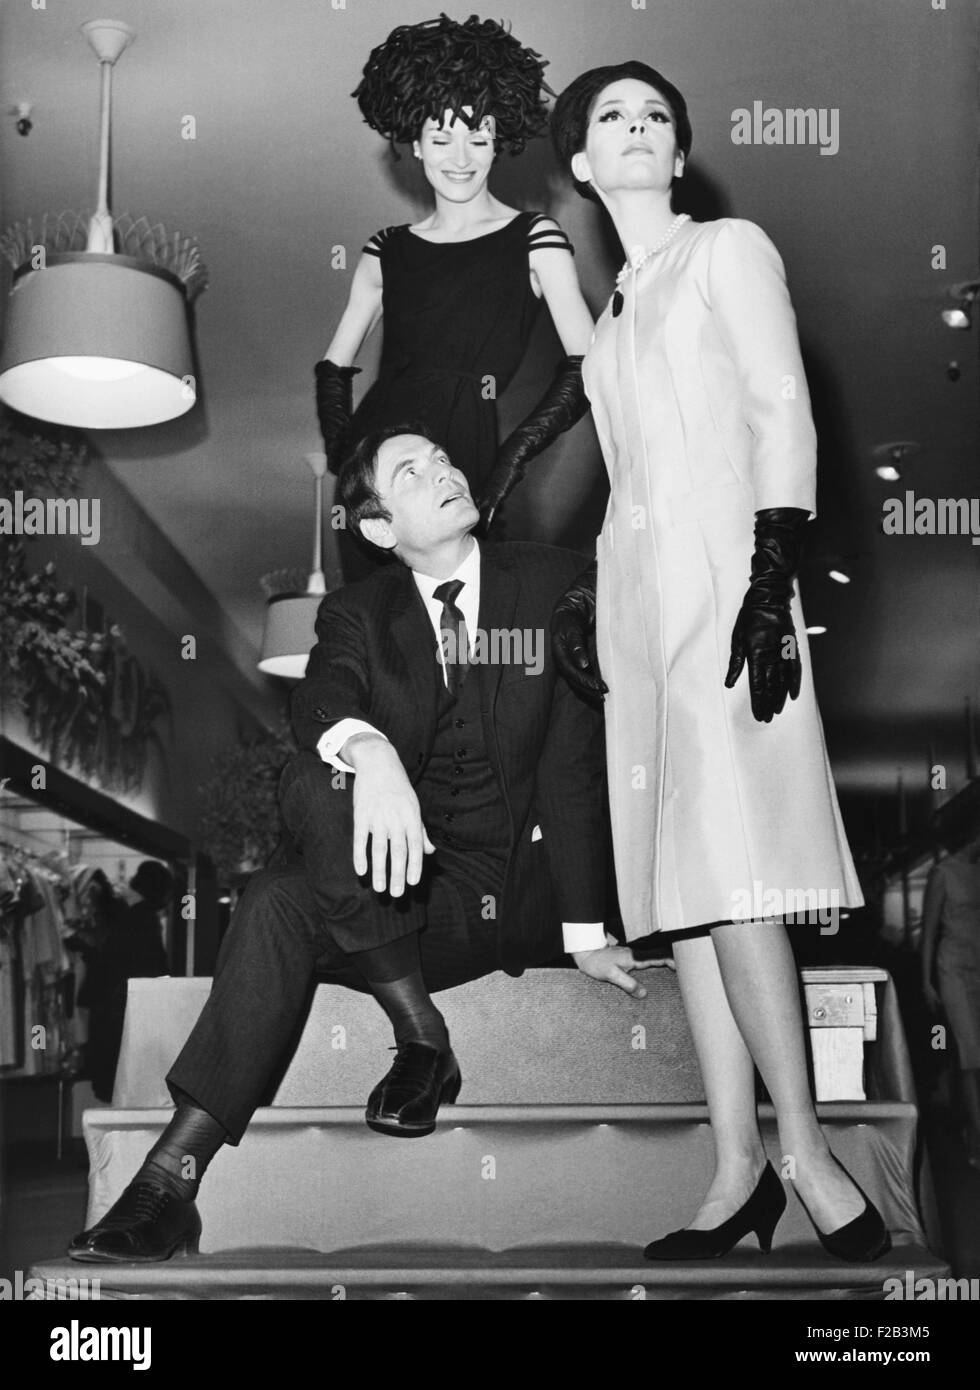 Pierre Cardin Italian Born French Fashion Designer With Models At Stock Photo Alamy